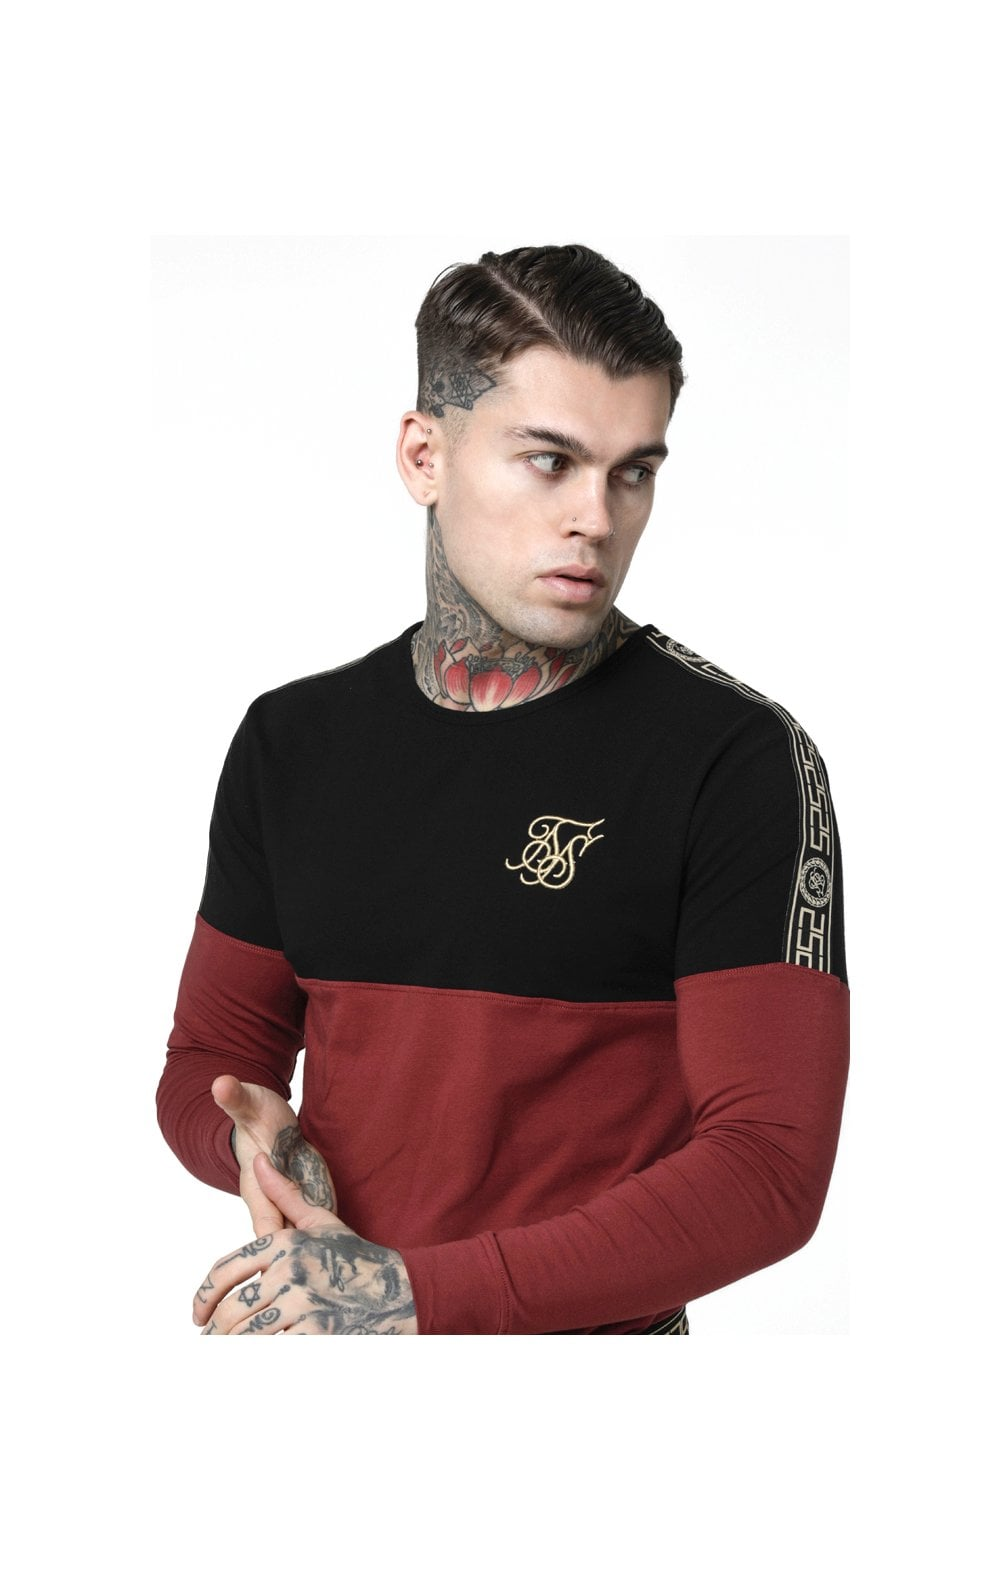 SikSilk L/S Cartel Cut & Sew Half Tape Gym Tee - Black & Red